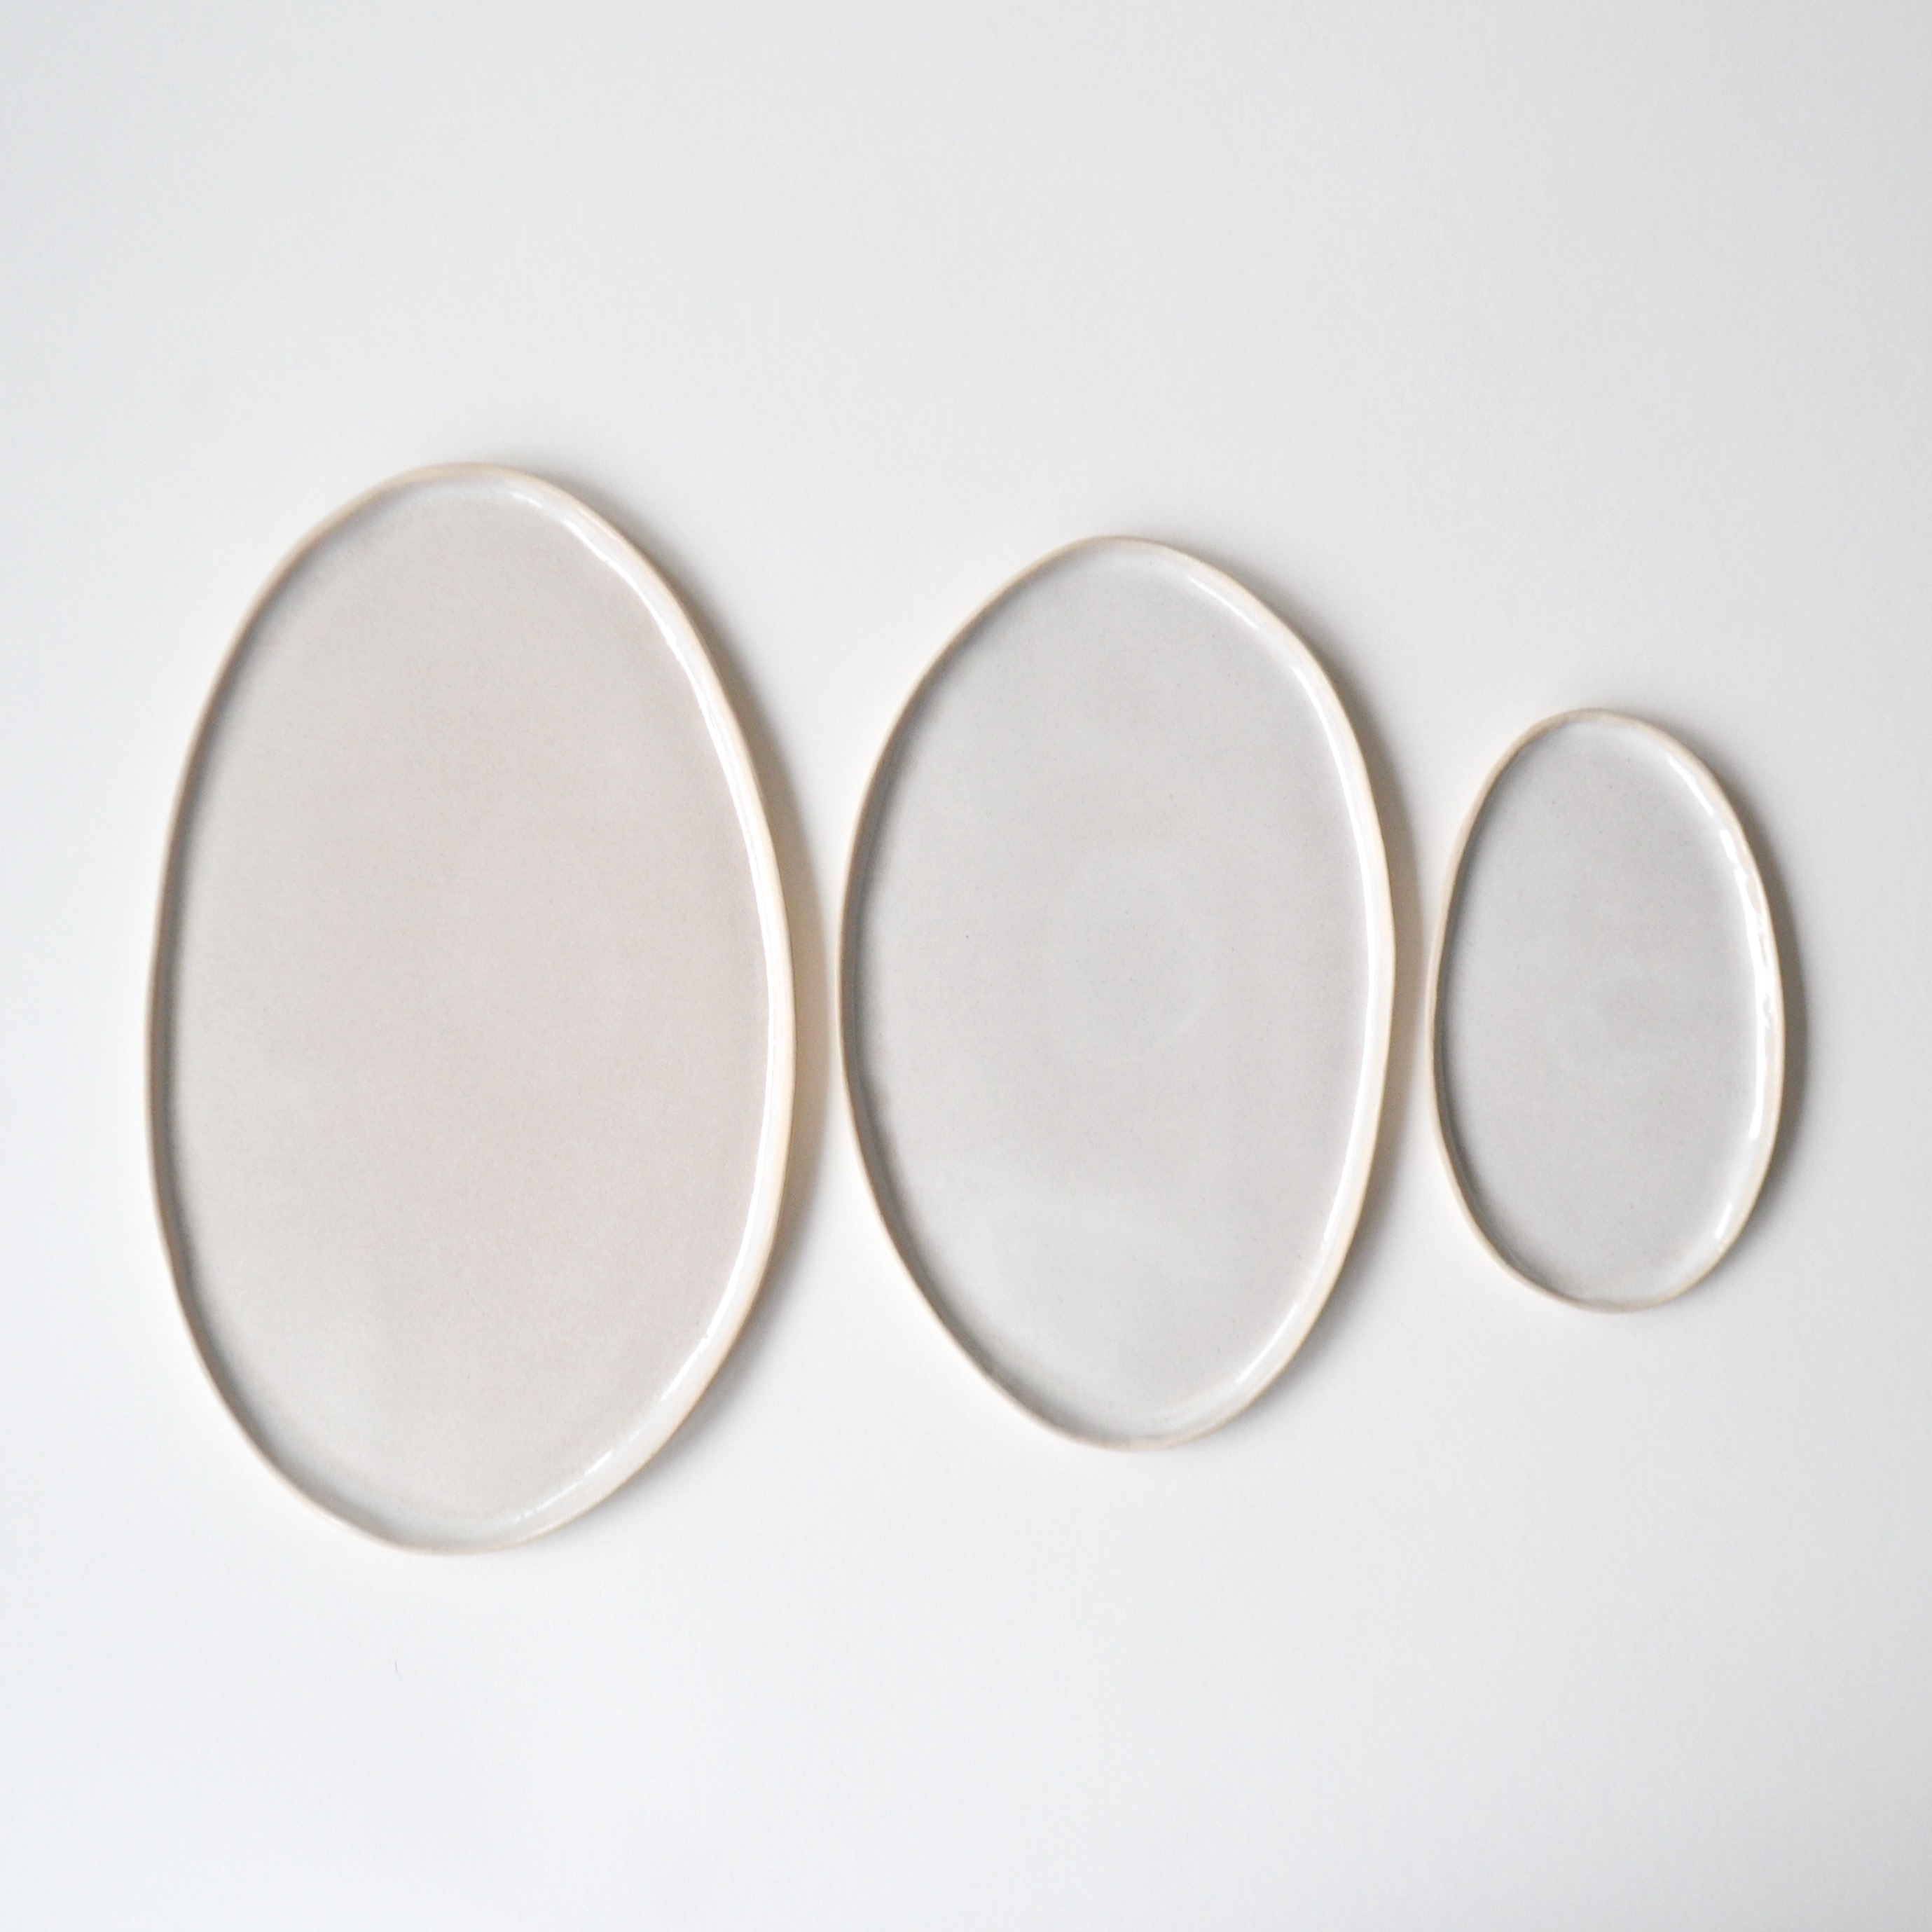 Set of 3 Ovals in Pearl